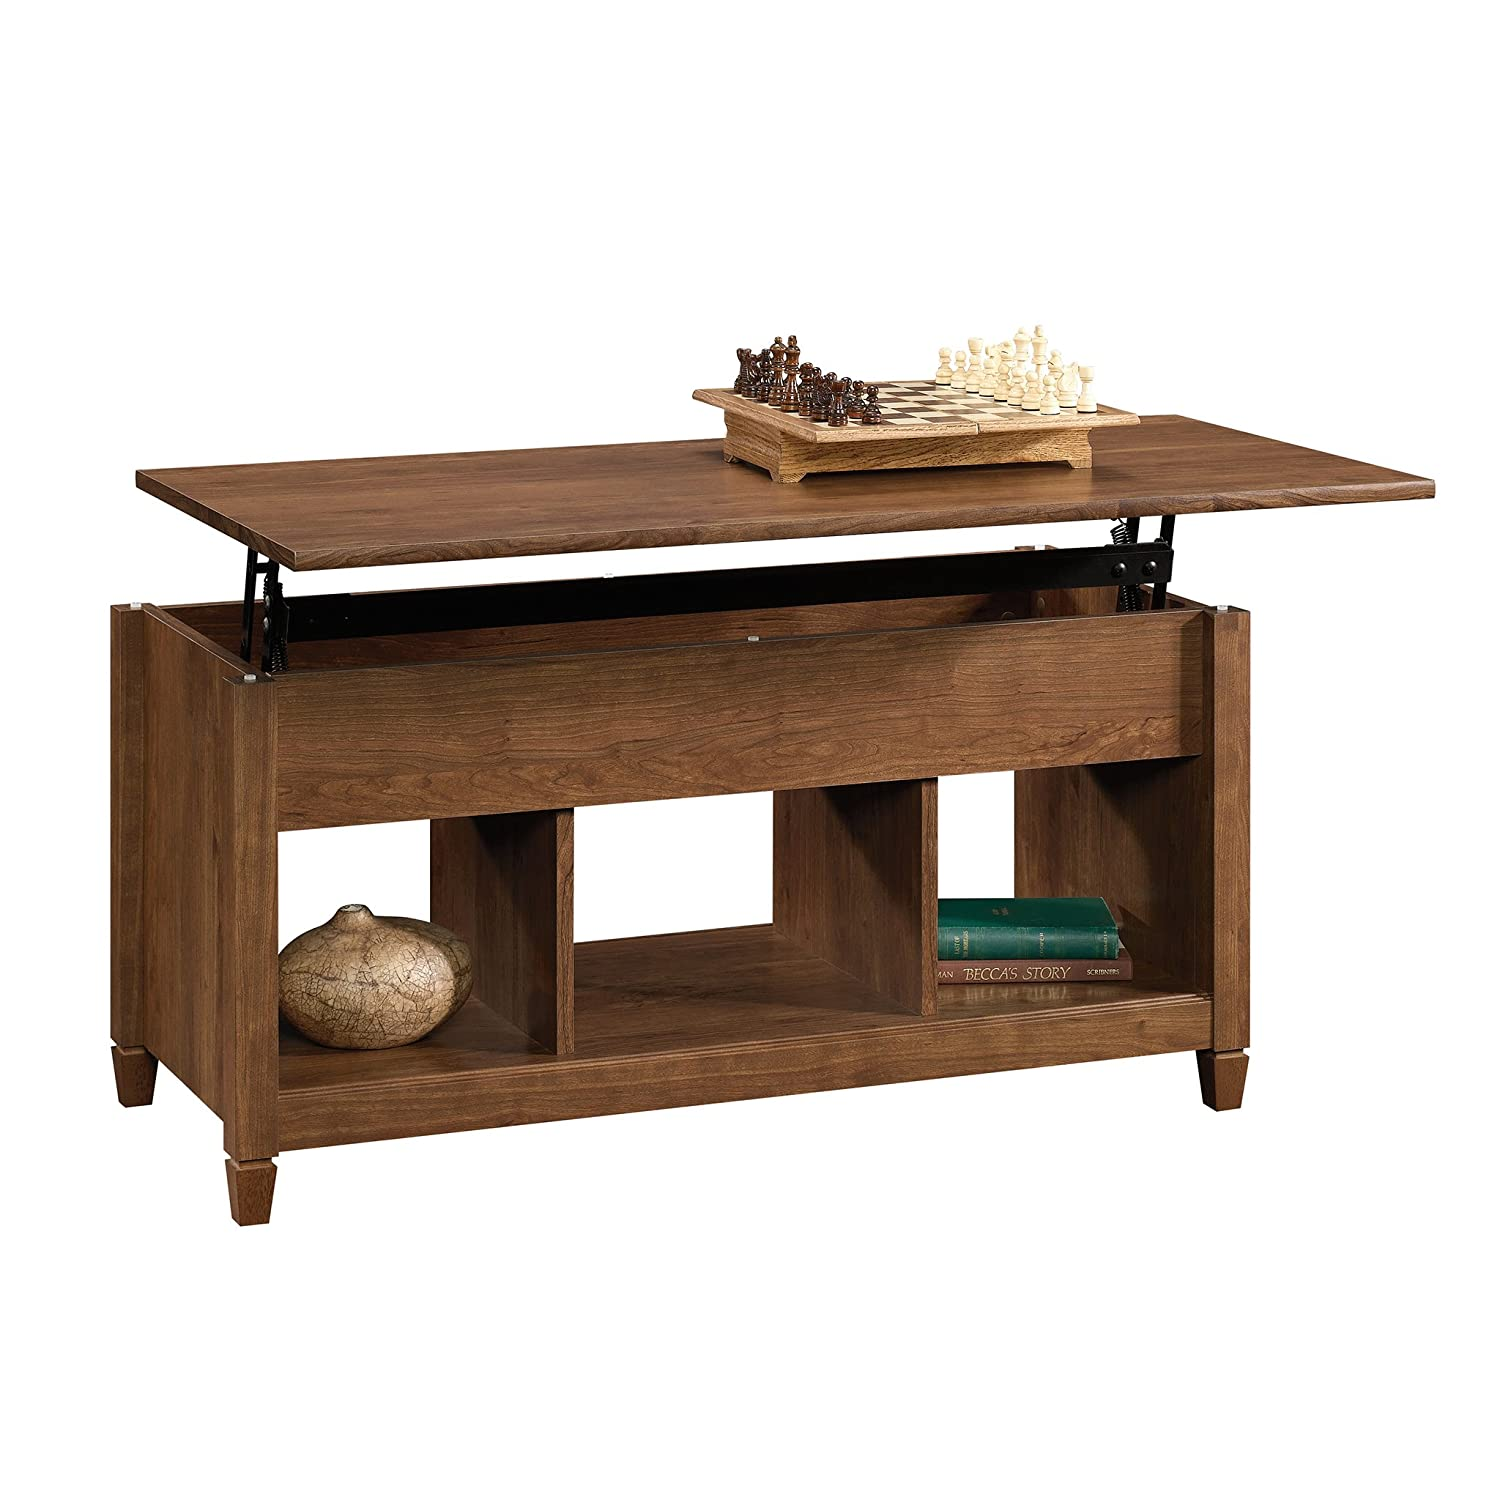 Sauder 419399, Furniture Coffee Table, Auburn Cherry Sauder Woodworking